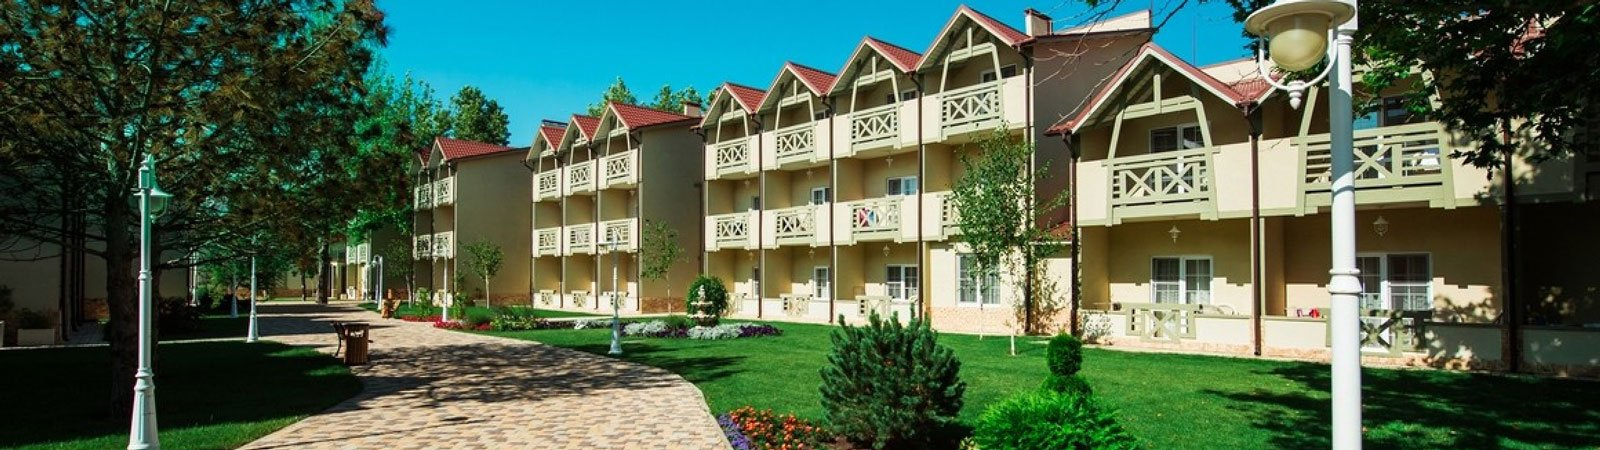 Отель «Alean Family Resort SPA Doville» (Алеан Ремели Резорт Спа Довиль), Анапа